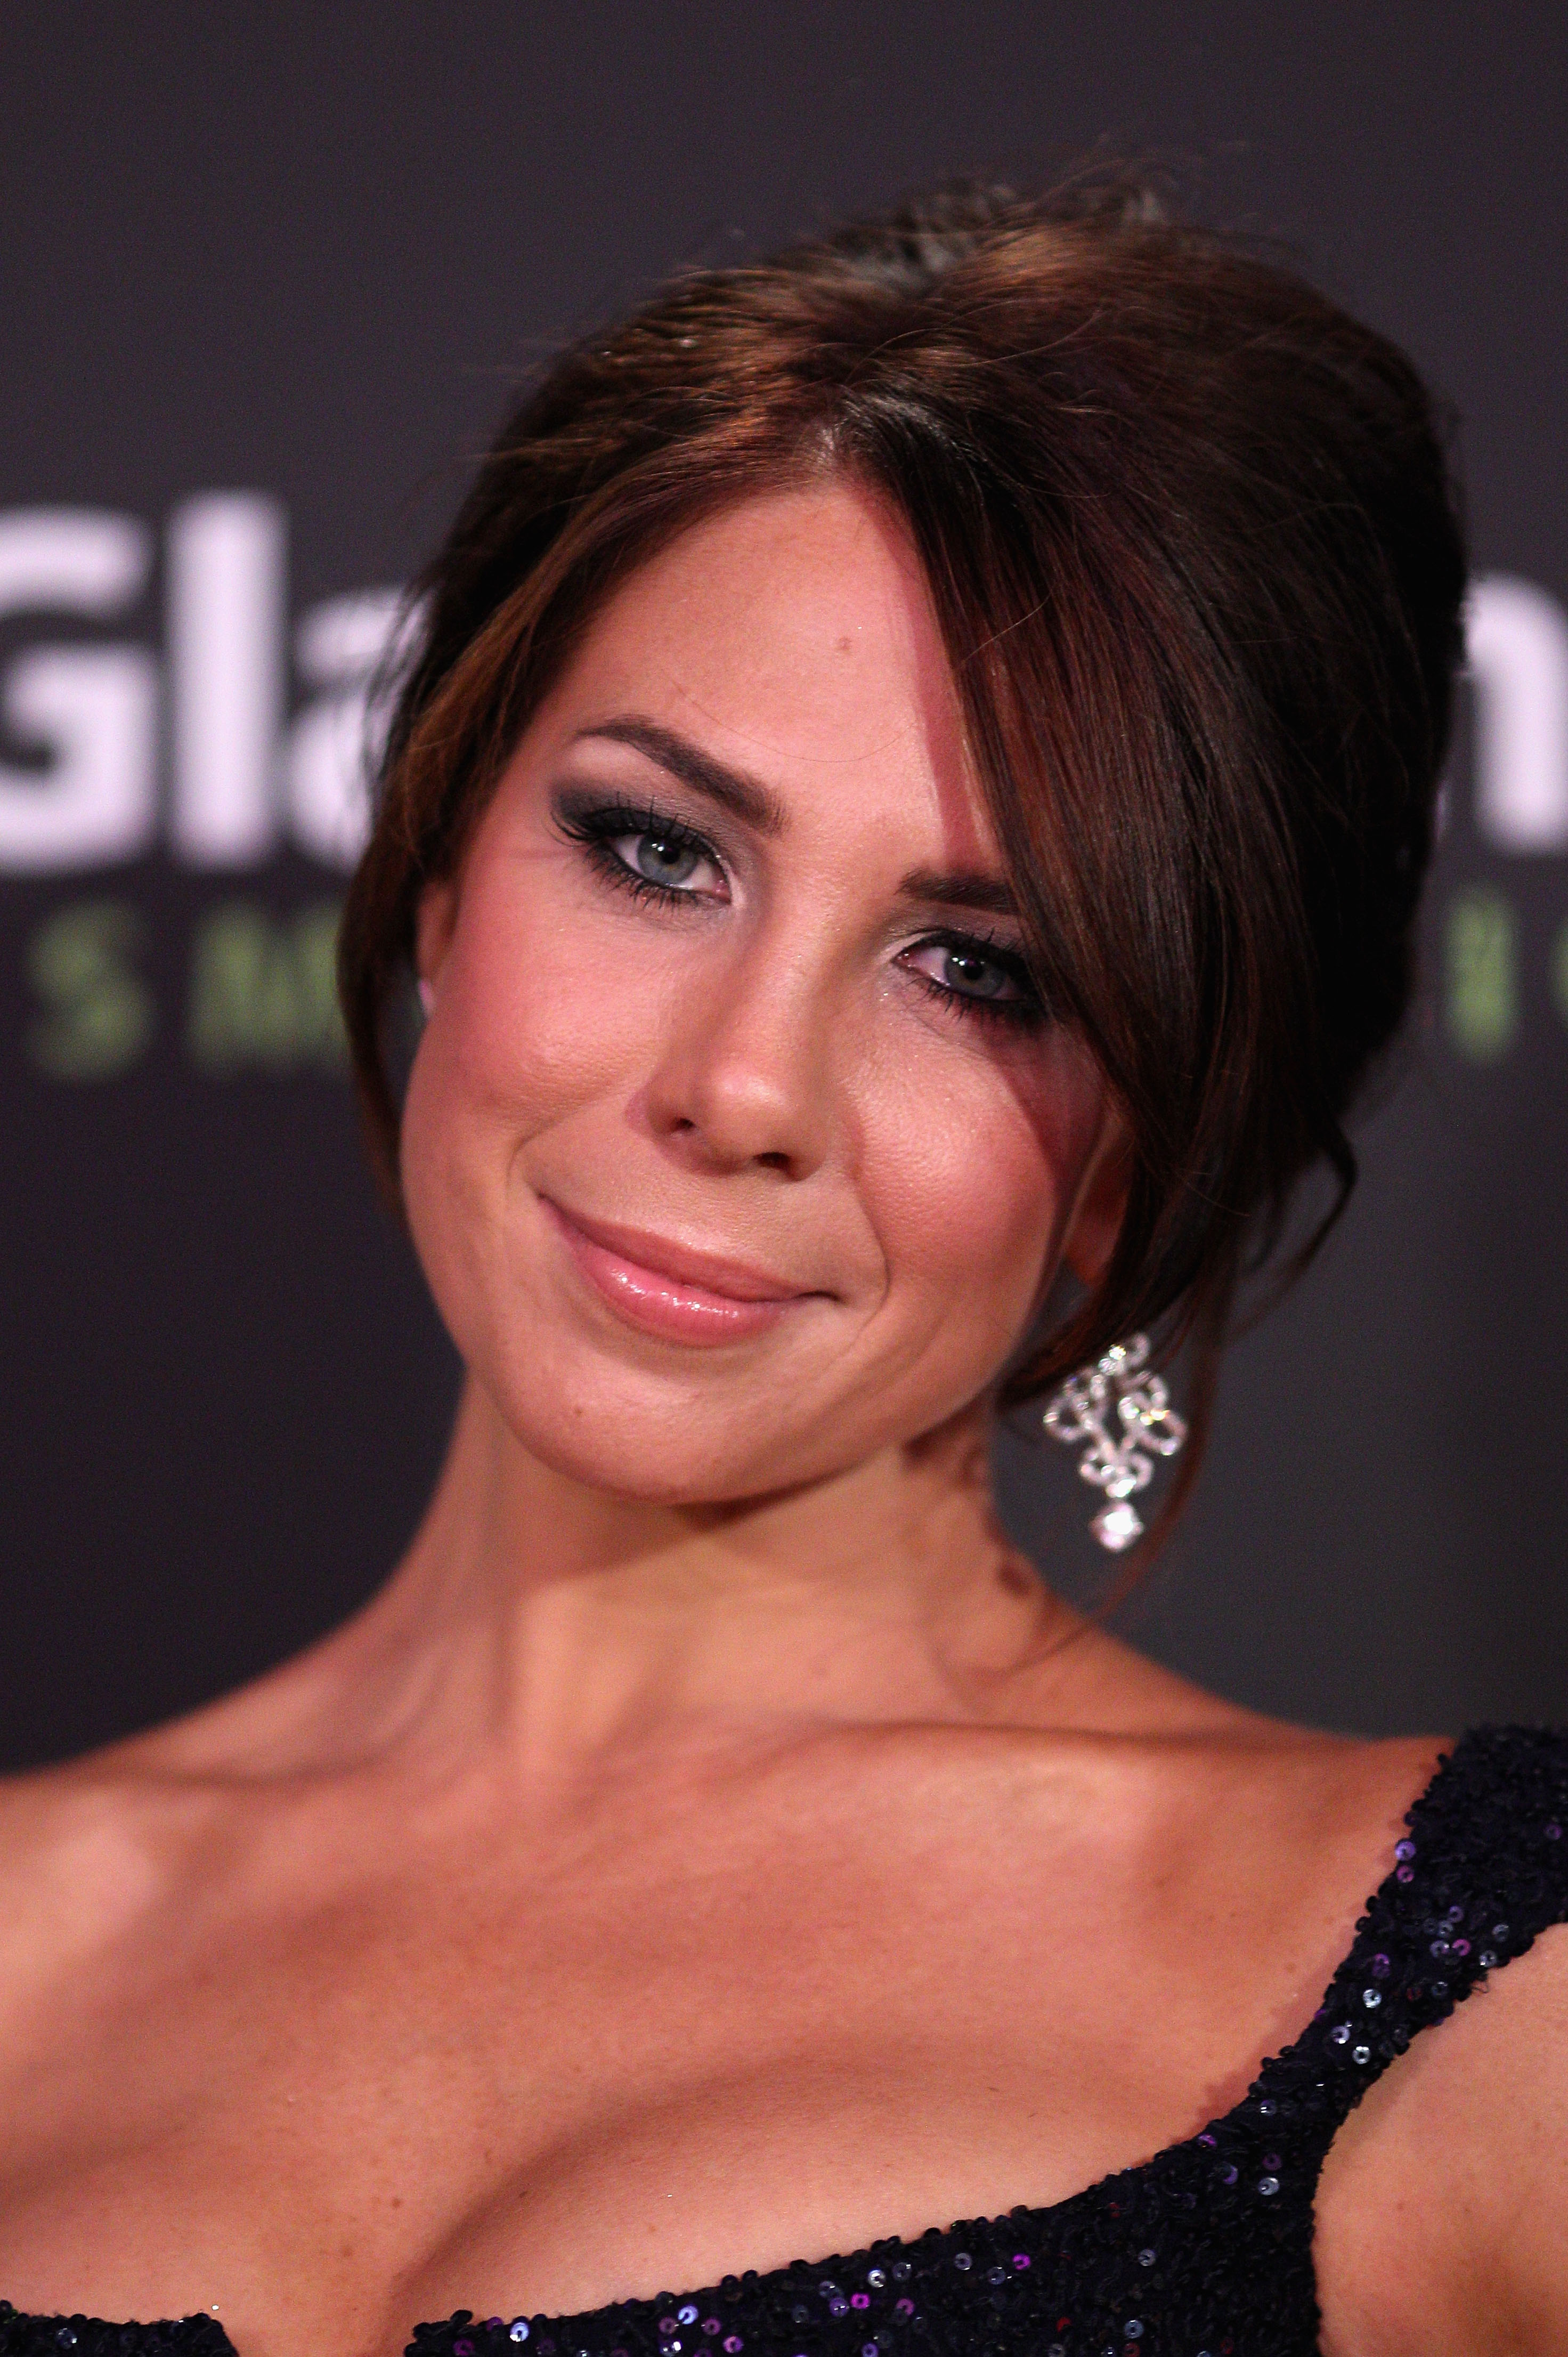 kate ritchie - photo #43